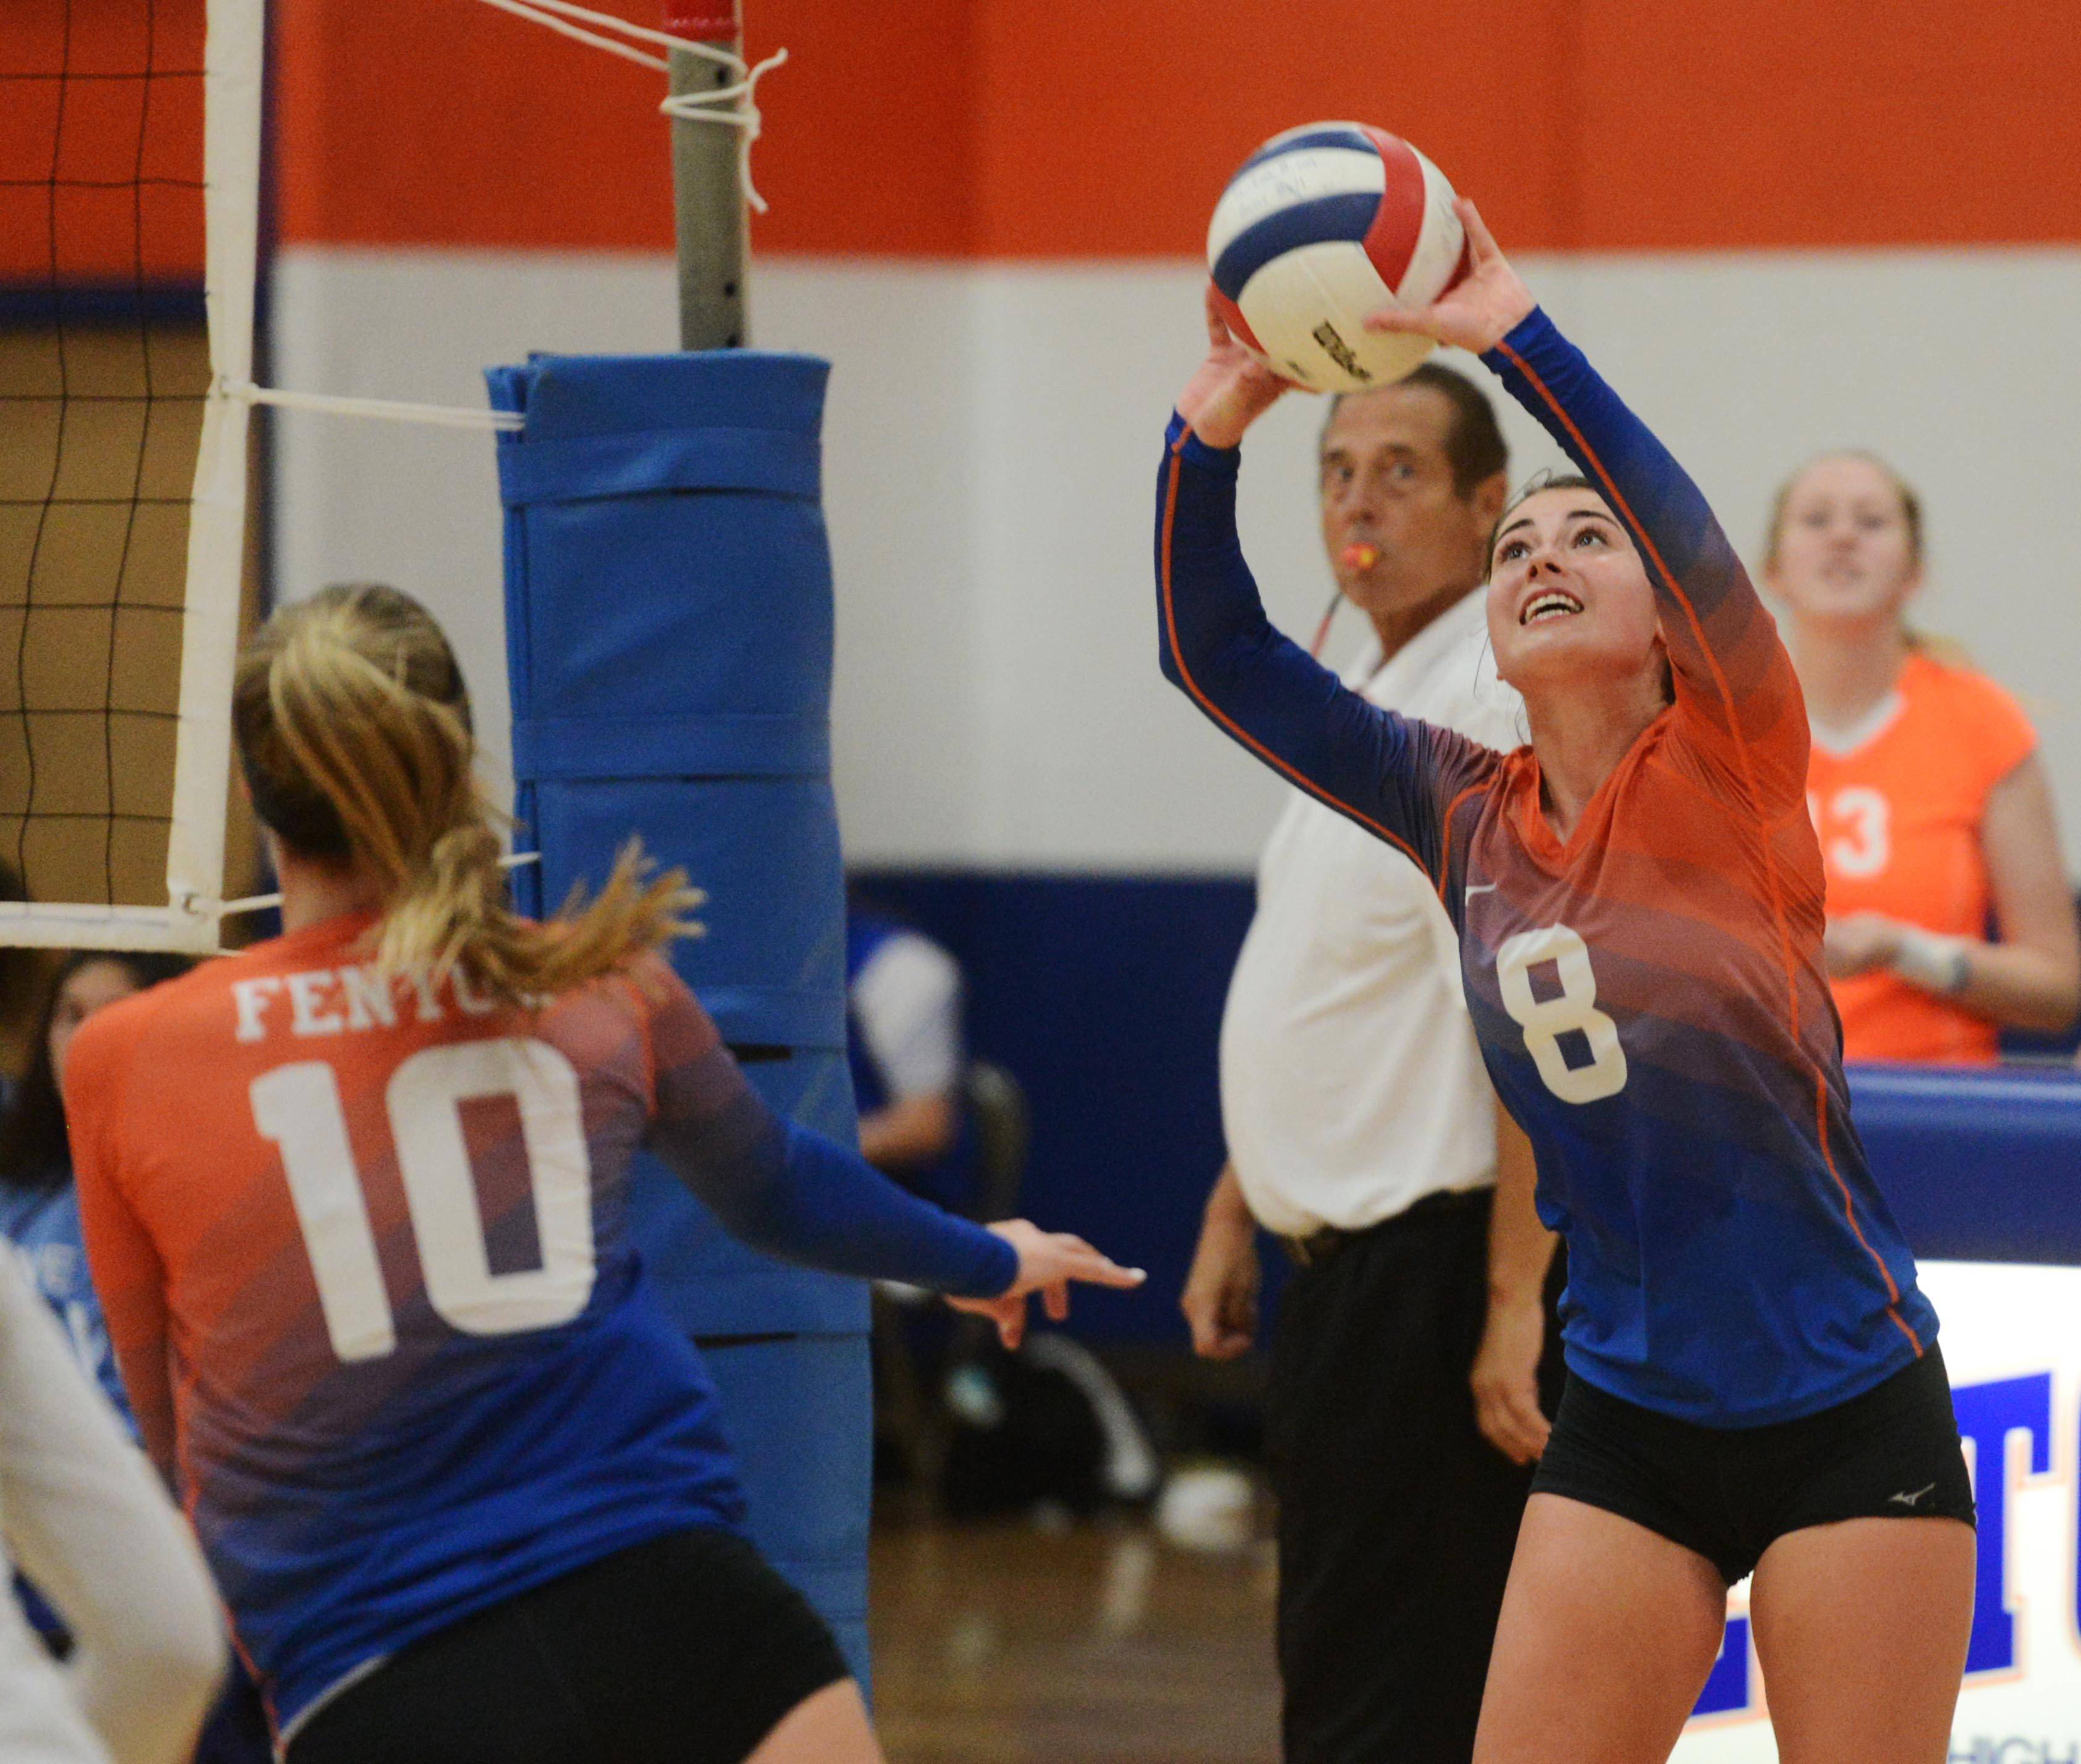 Fenton's Mackenzie Miller sets the ball during Tuesday's girls volleyball match against IC Catholic Prep.